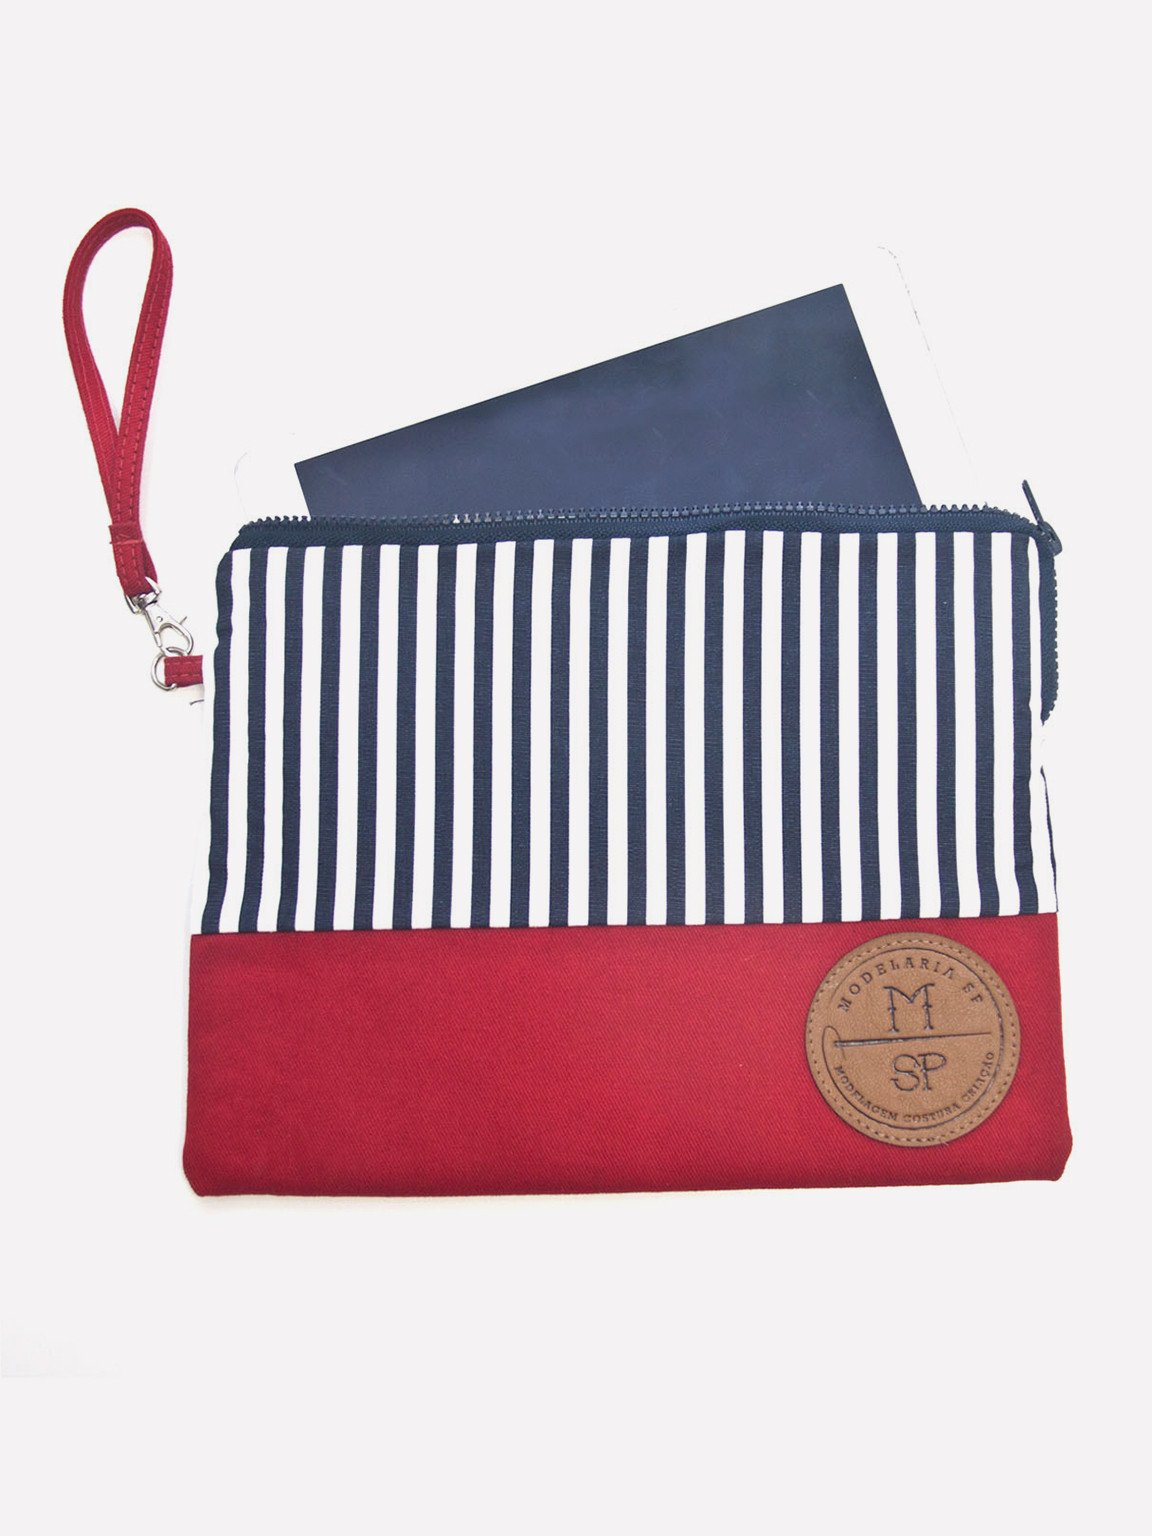 Foto do Bolsa Modelaria SP Tablet Navy-Vermelha